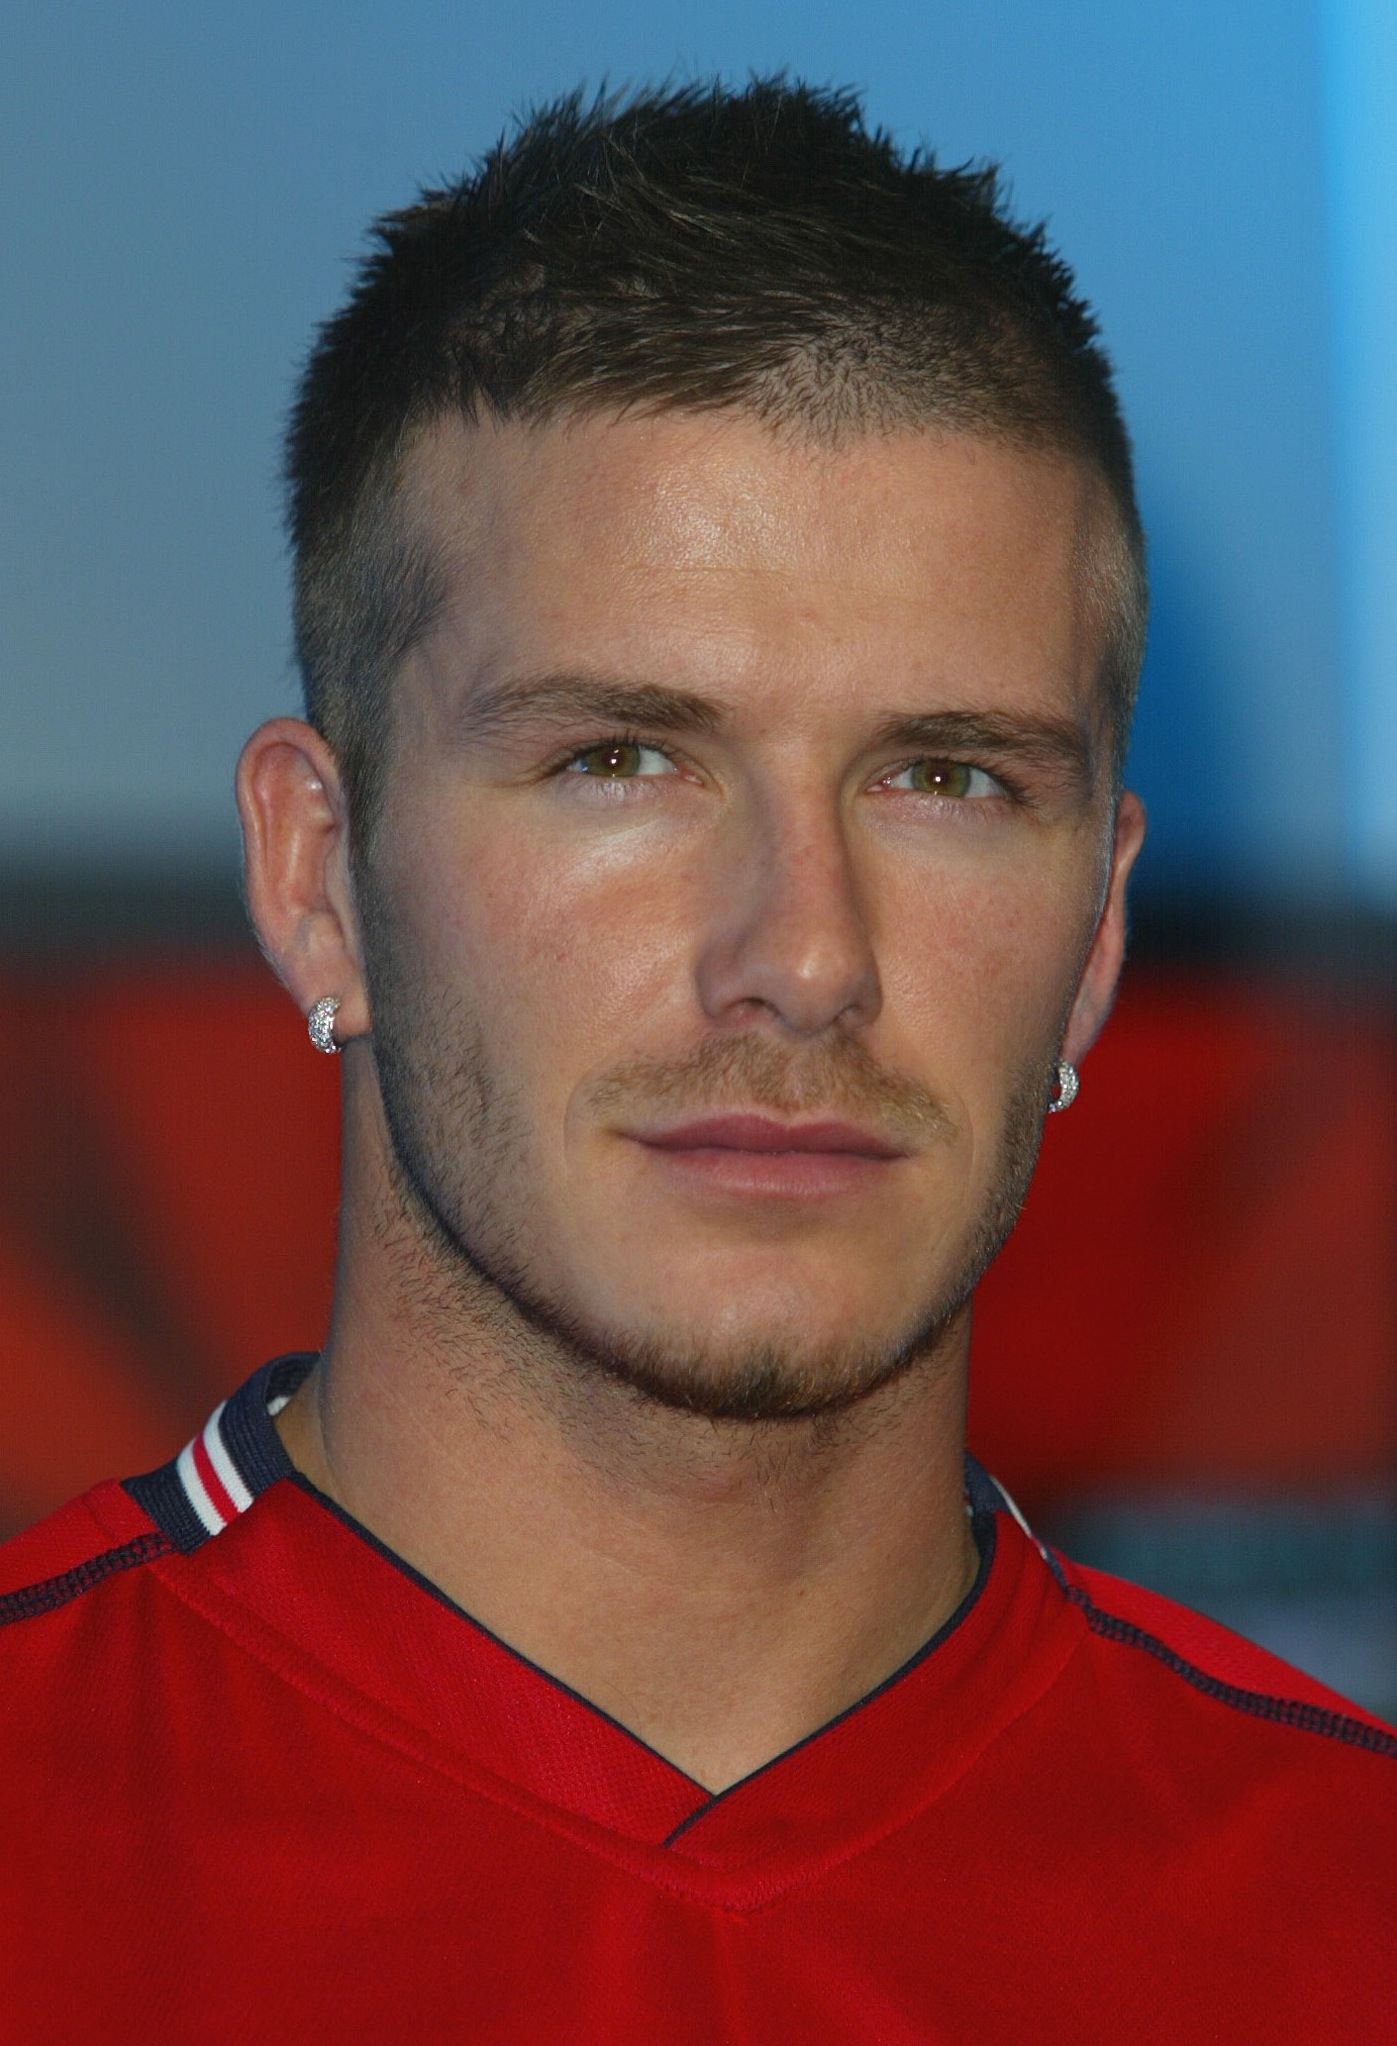 In photos: Top 14 David Beckham hairstyles | Who Ate all ... David Beckham